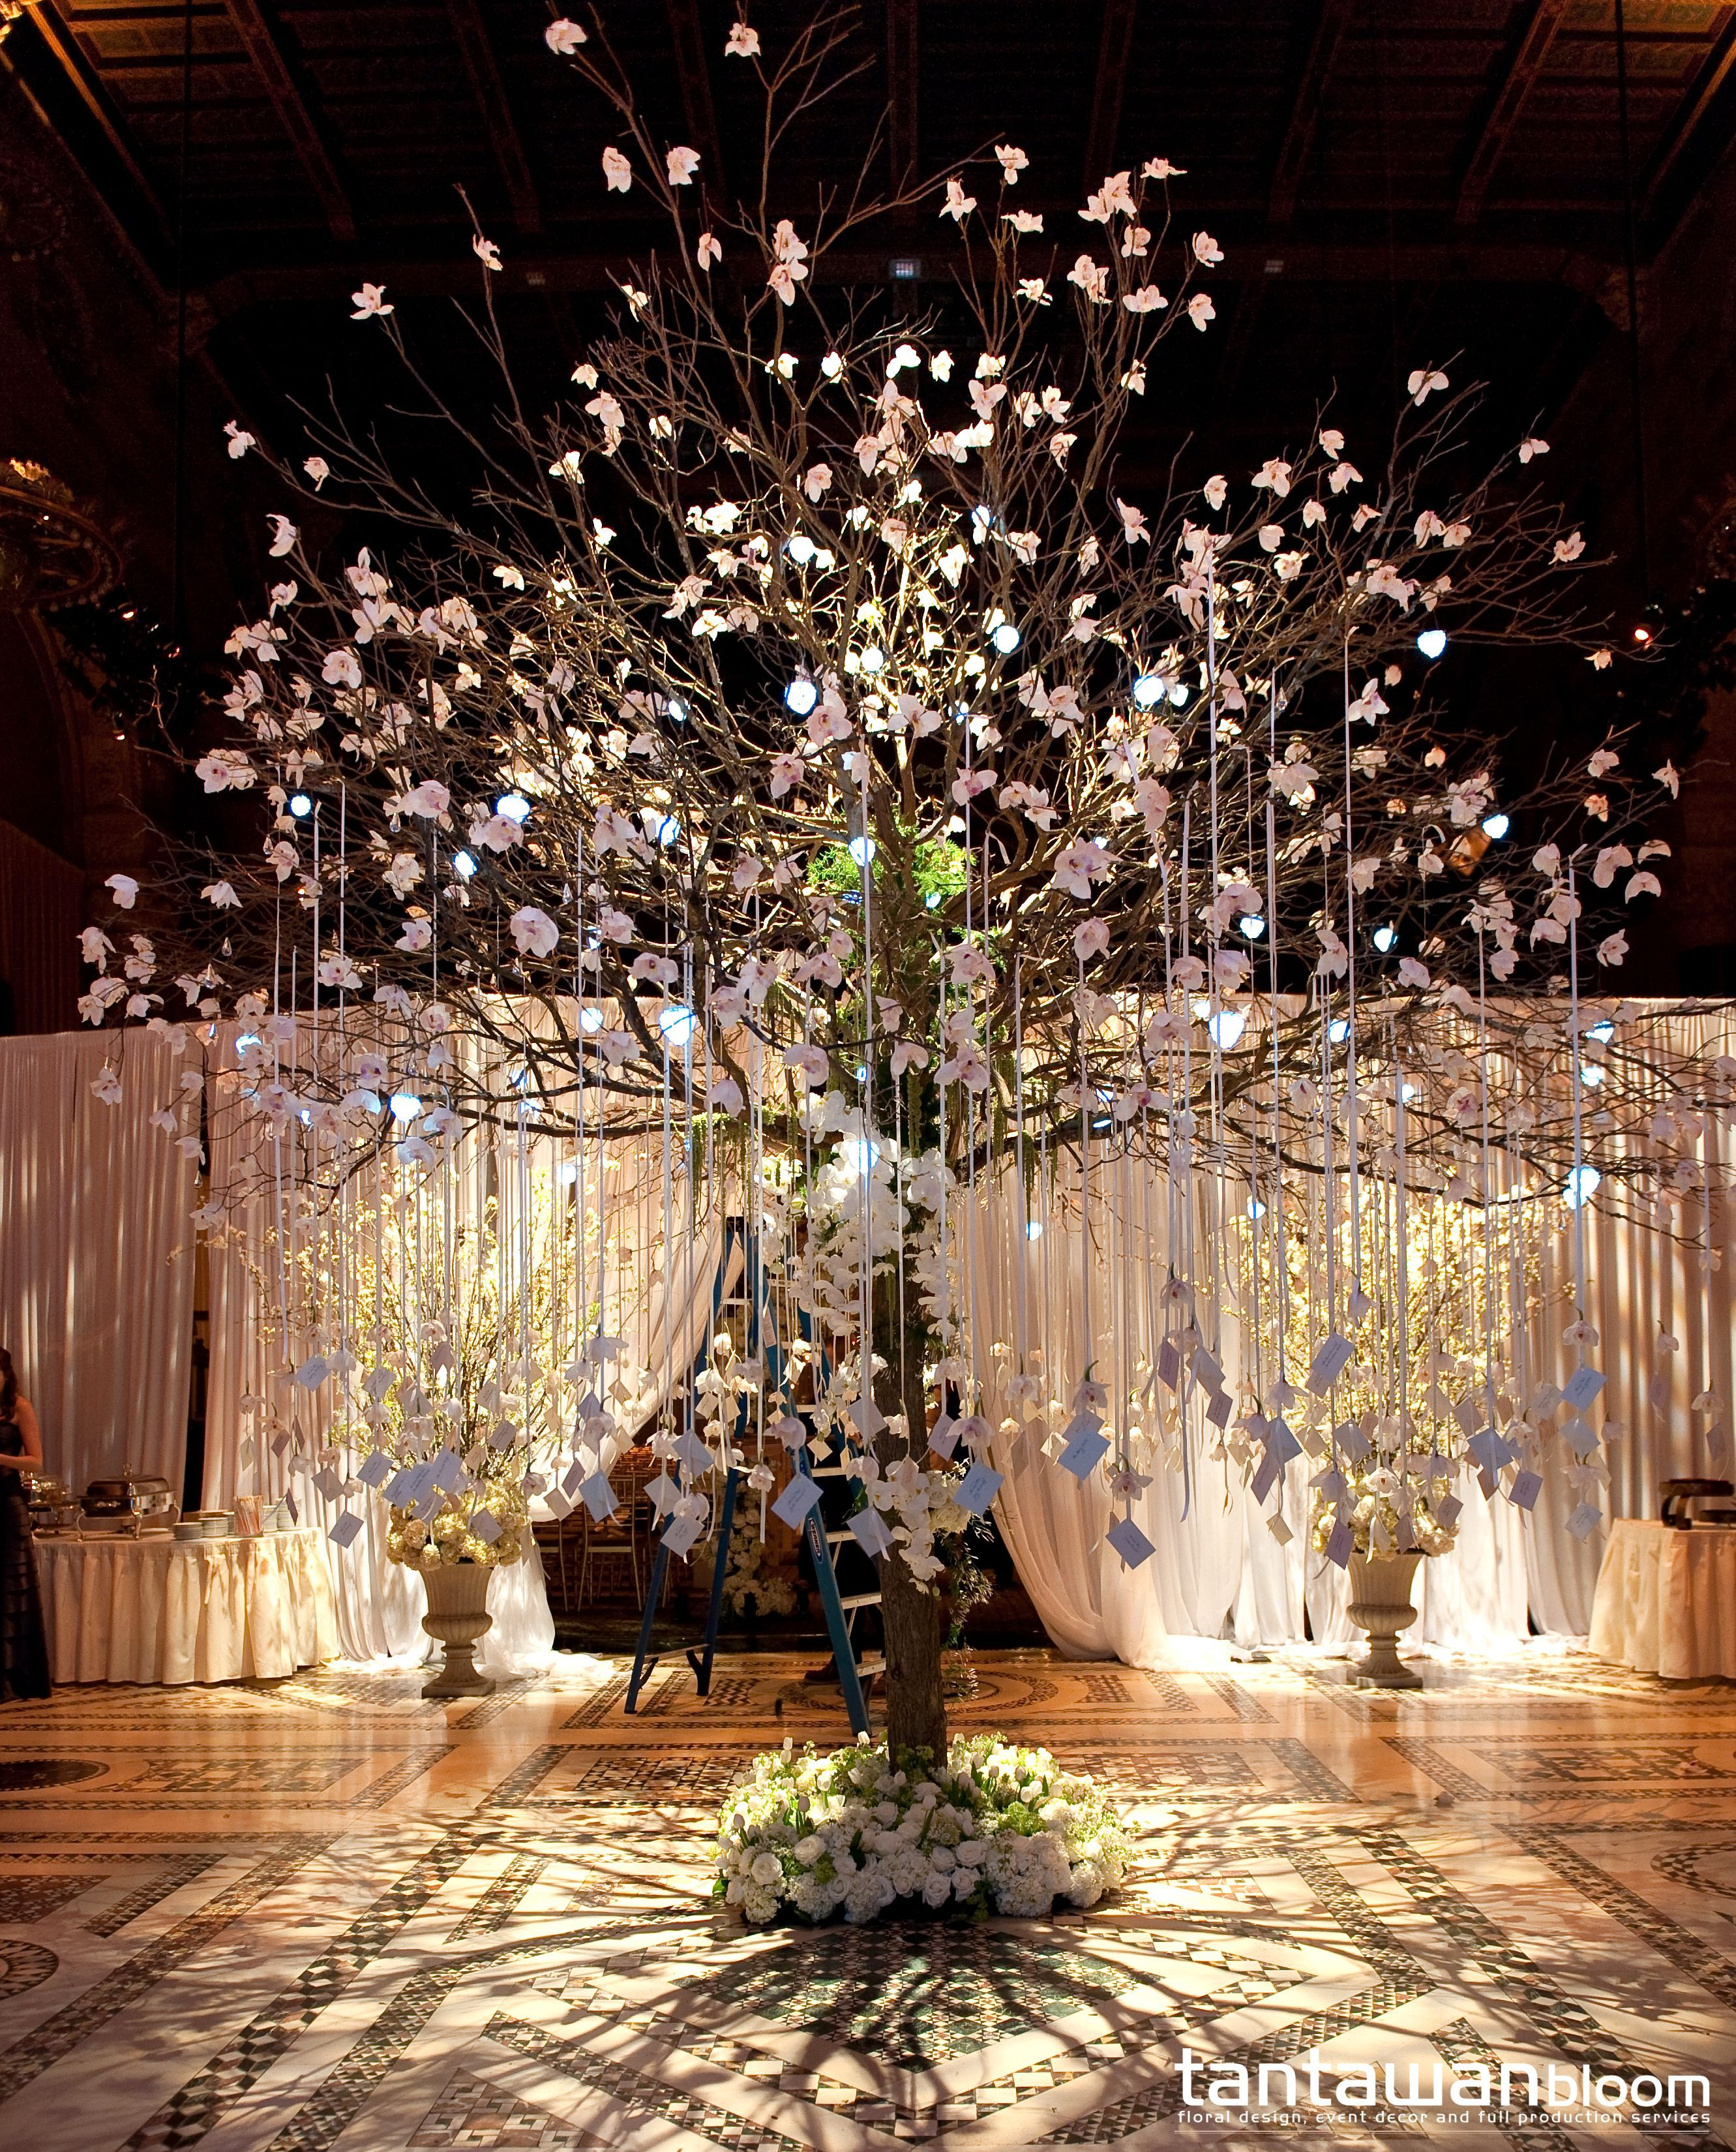 The 16 Feet Escort Card Tree With Orchids And Hanging